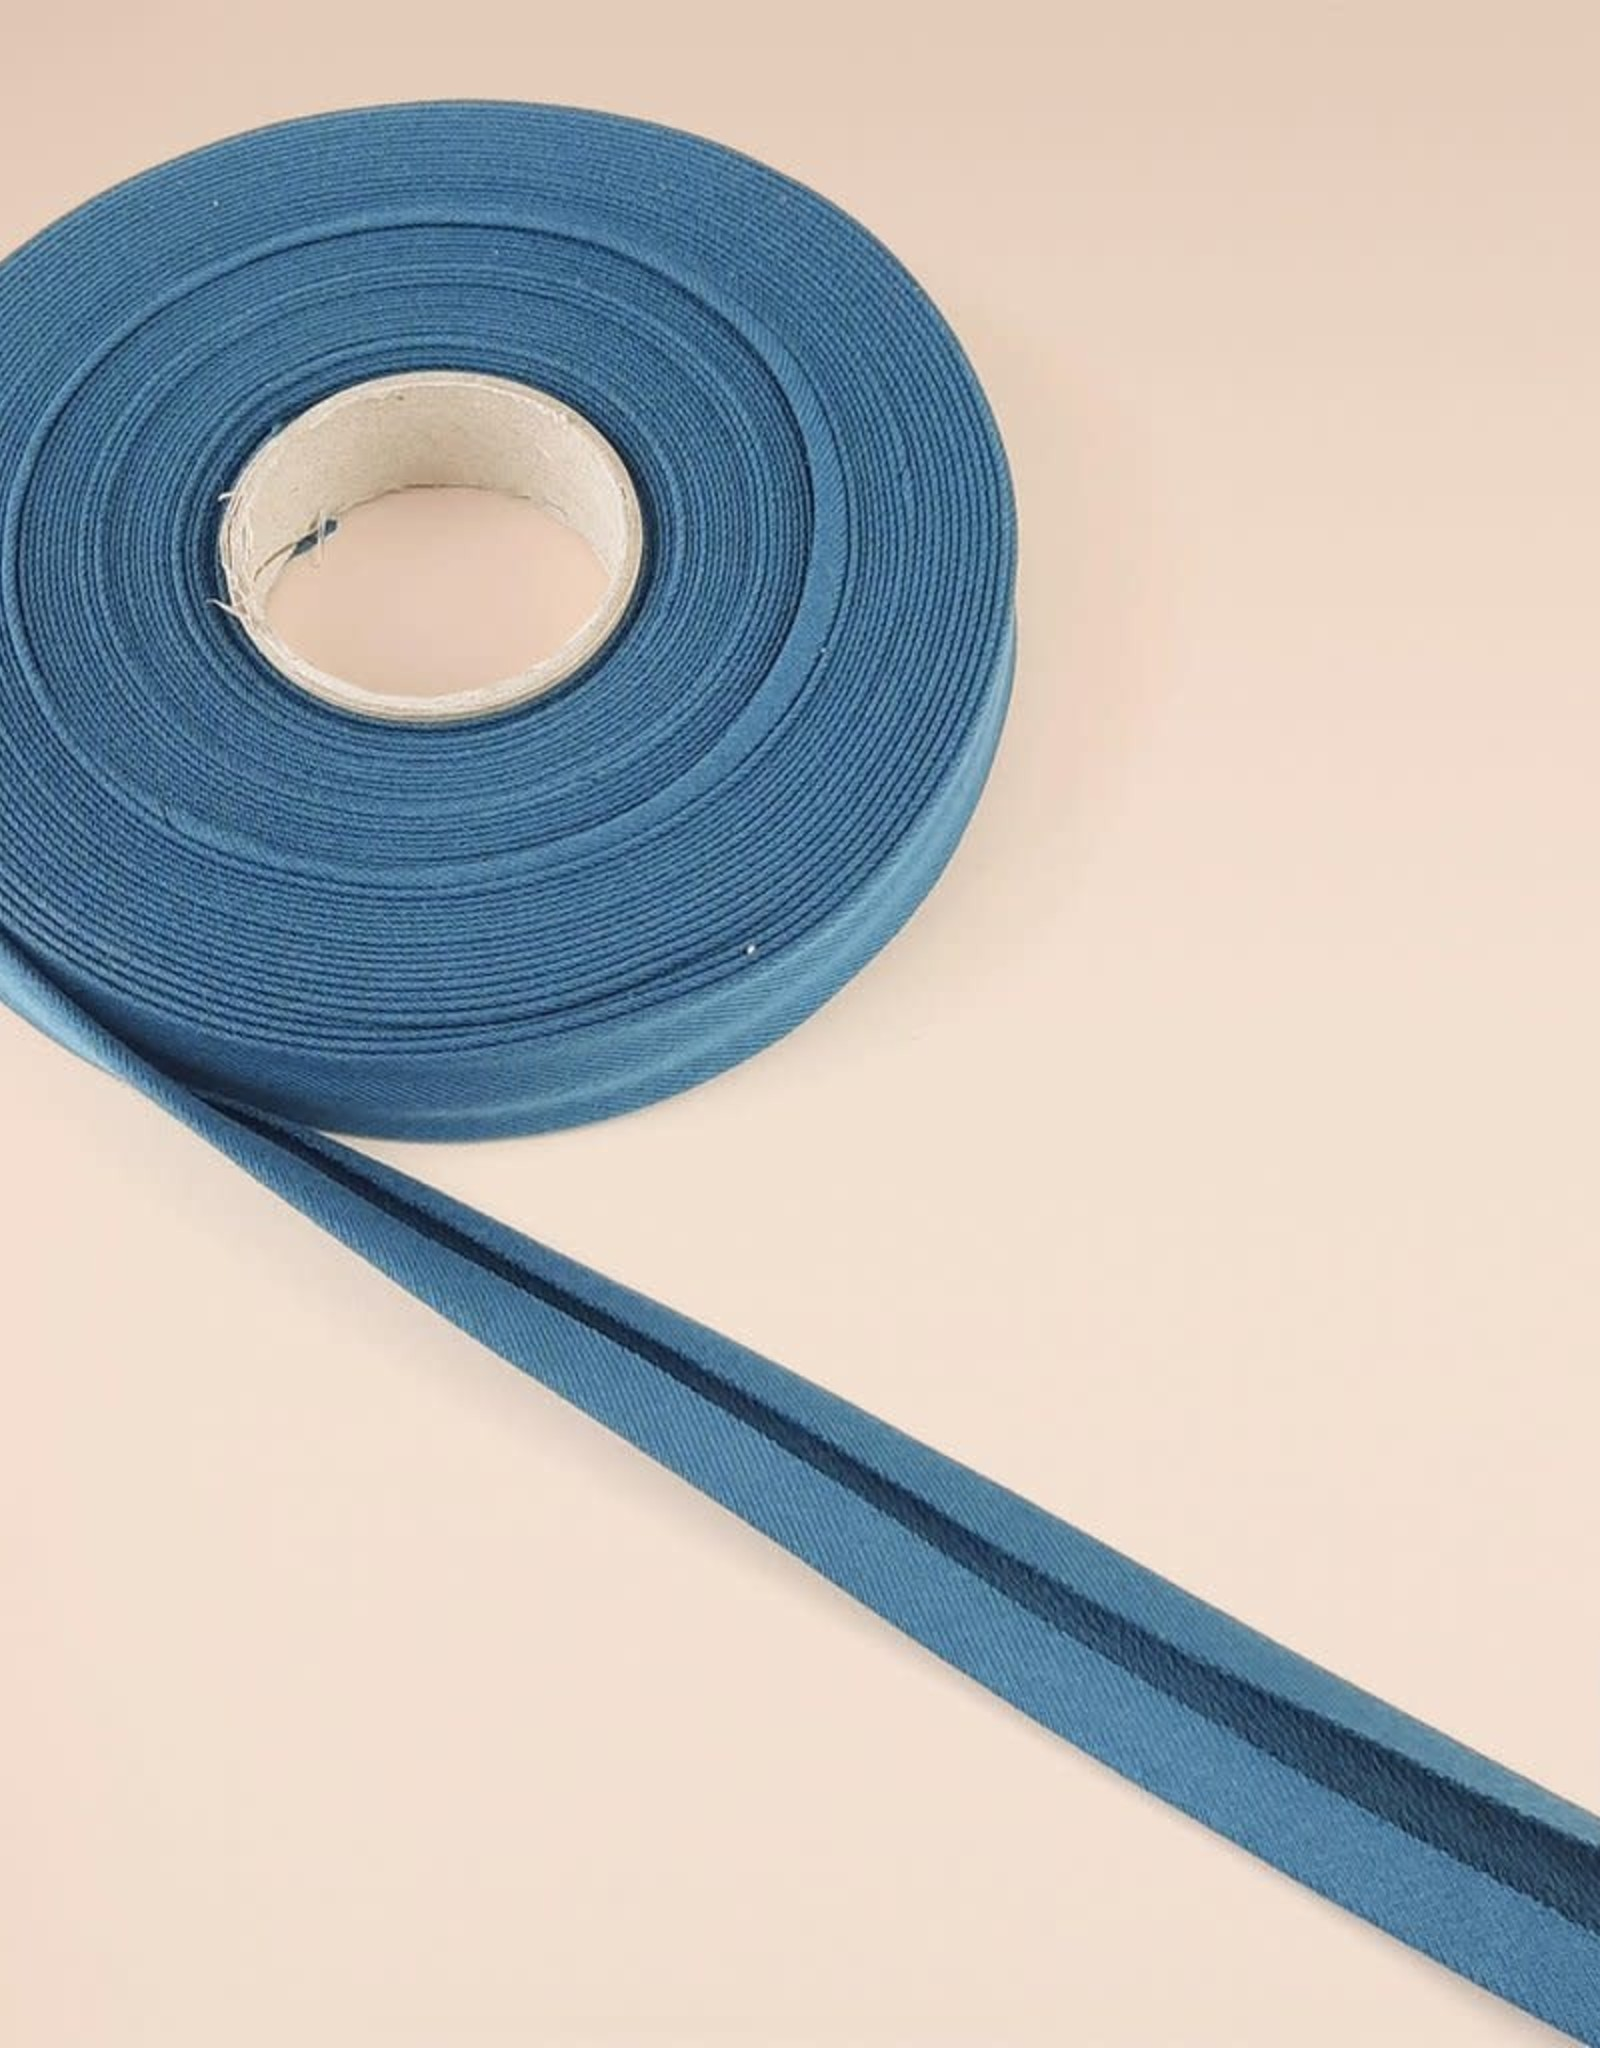 About Blue Fabrics Biais lint Blue wing teal 16